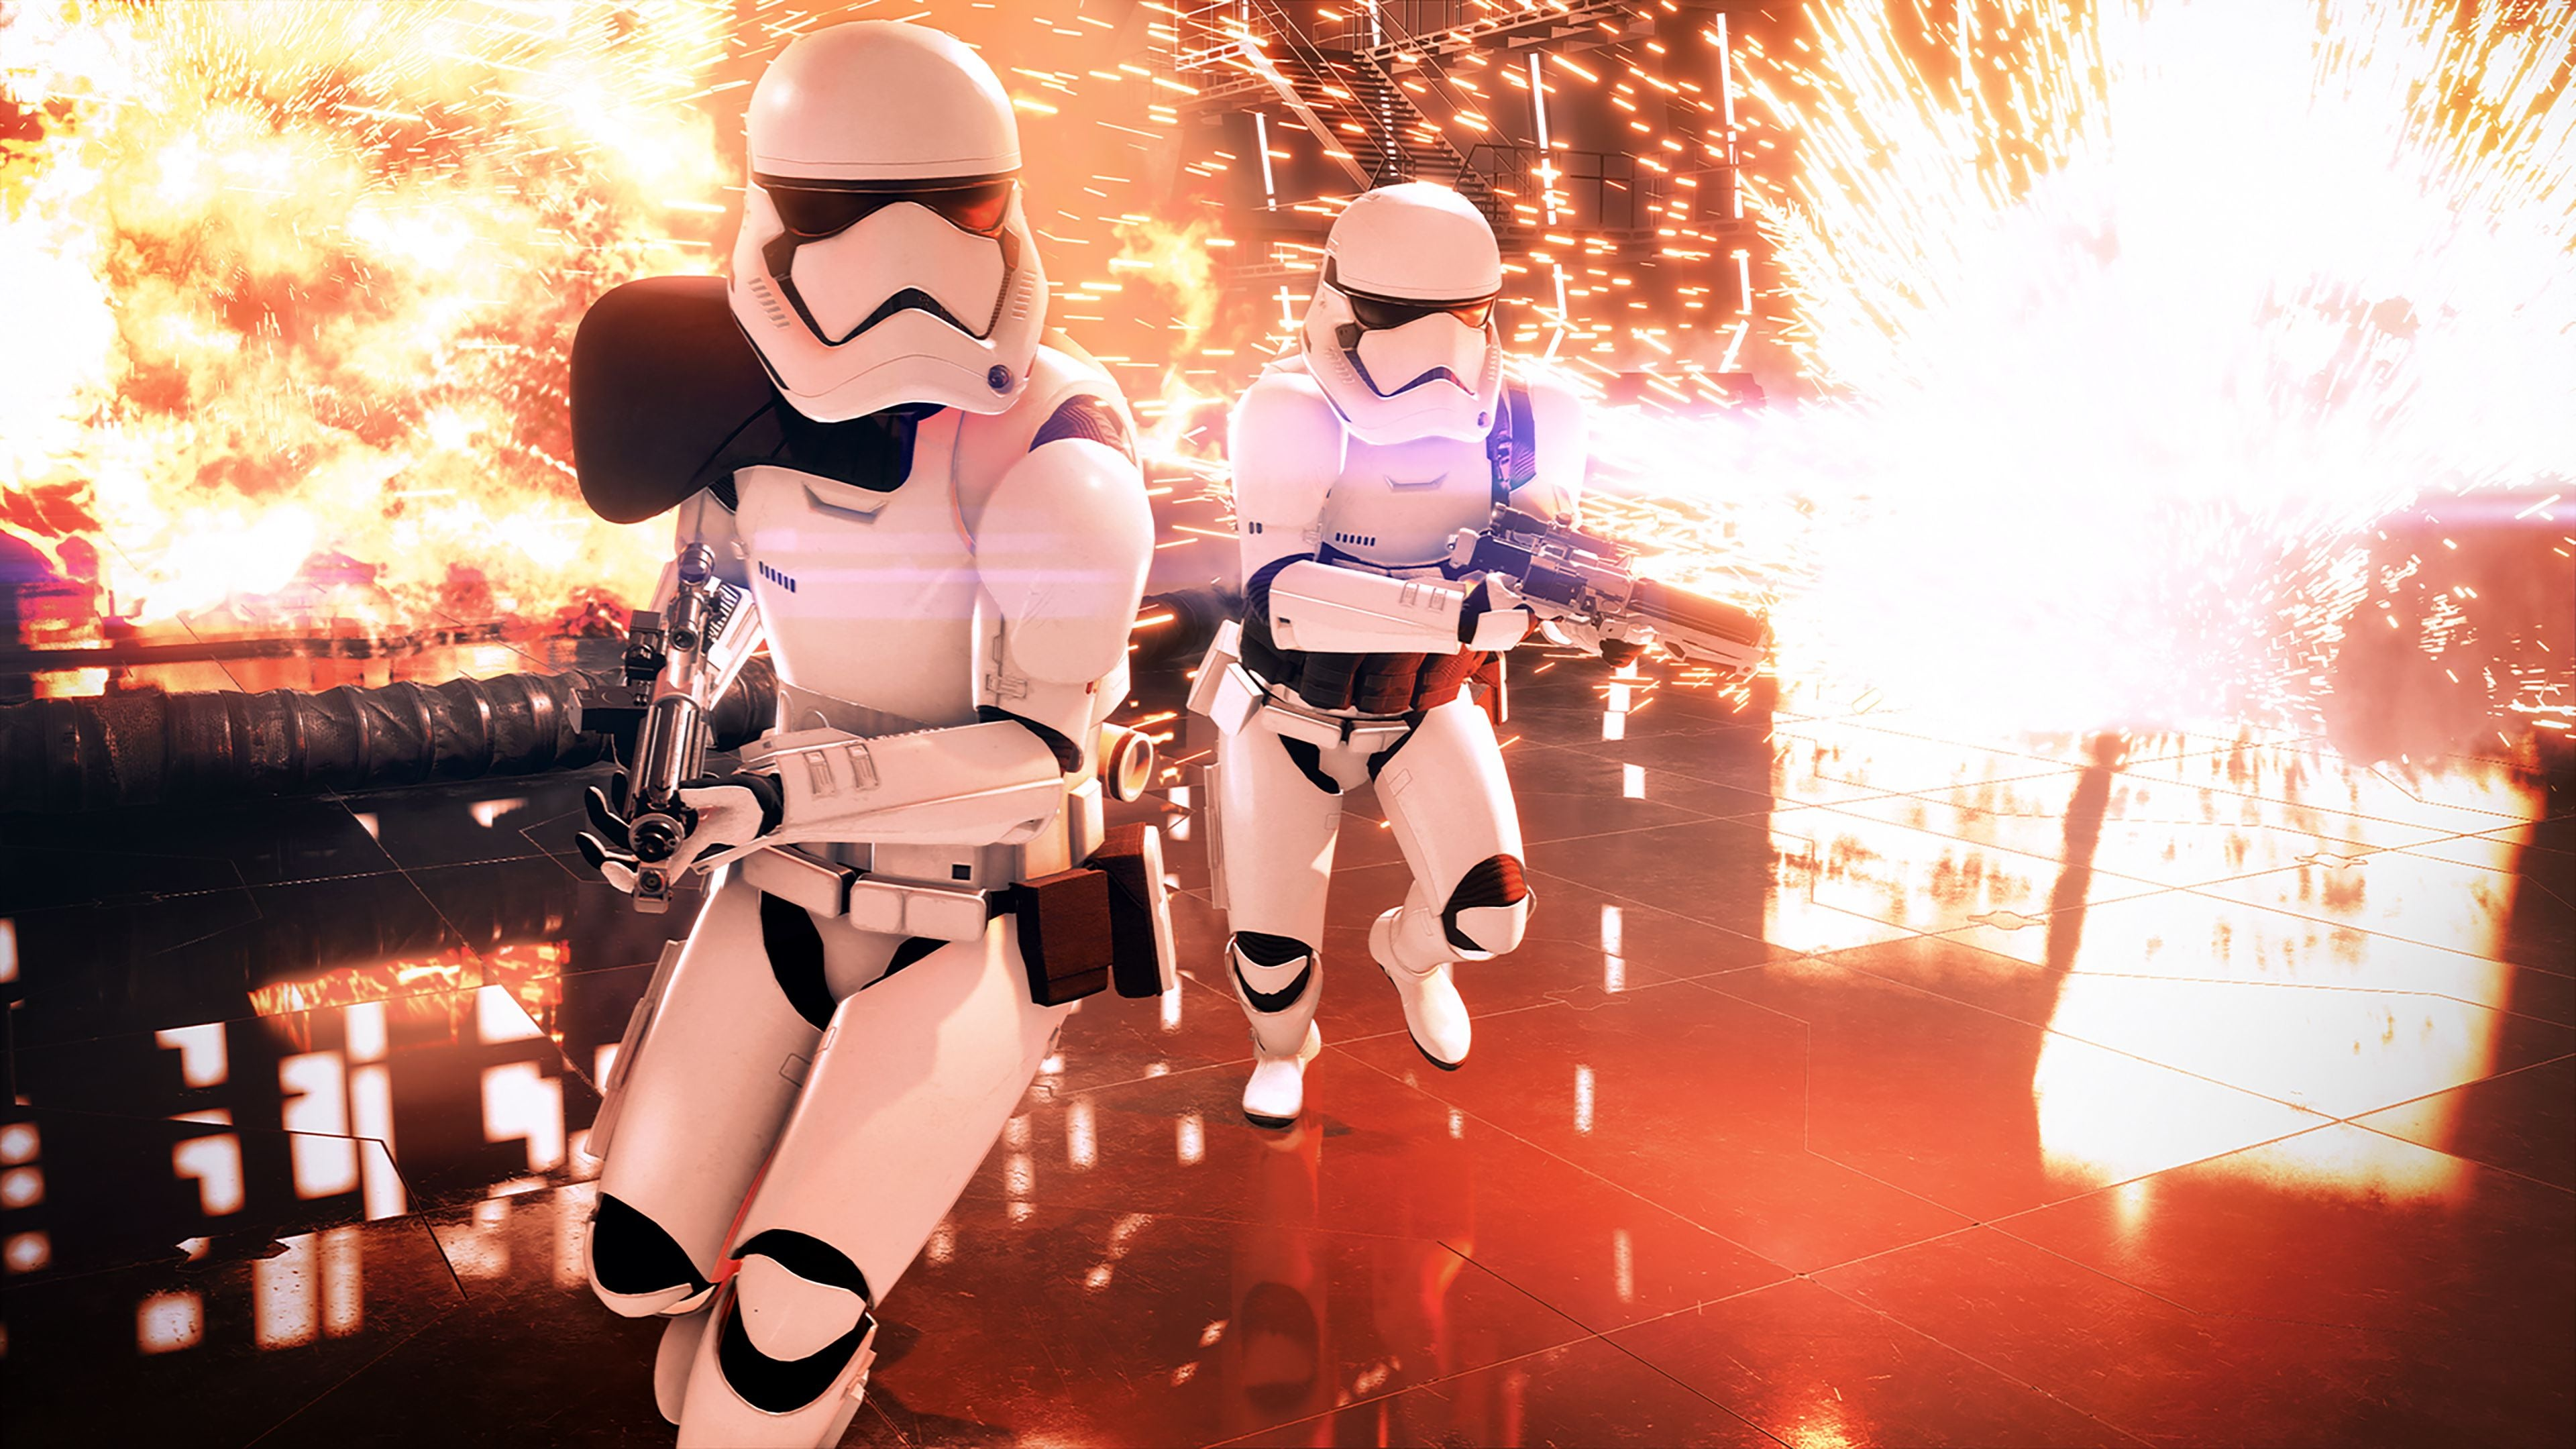 EA's Troubled Decade Of Star Wars Games